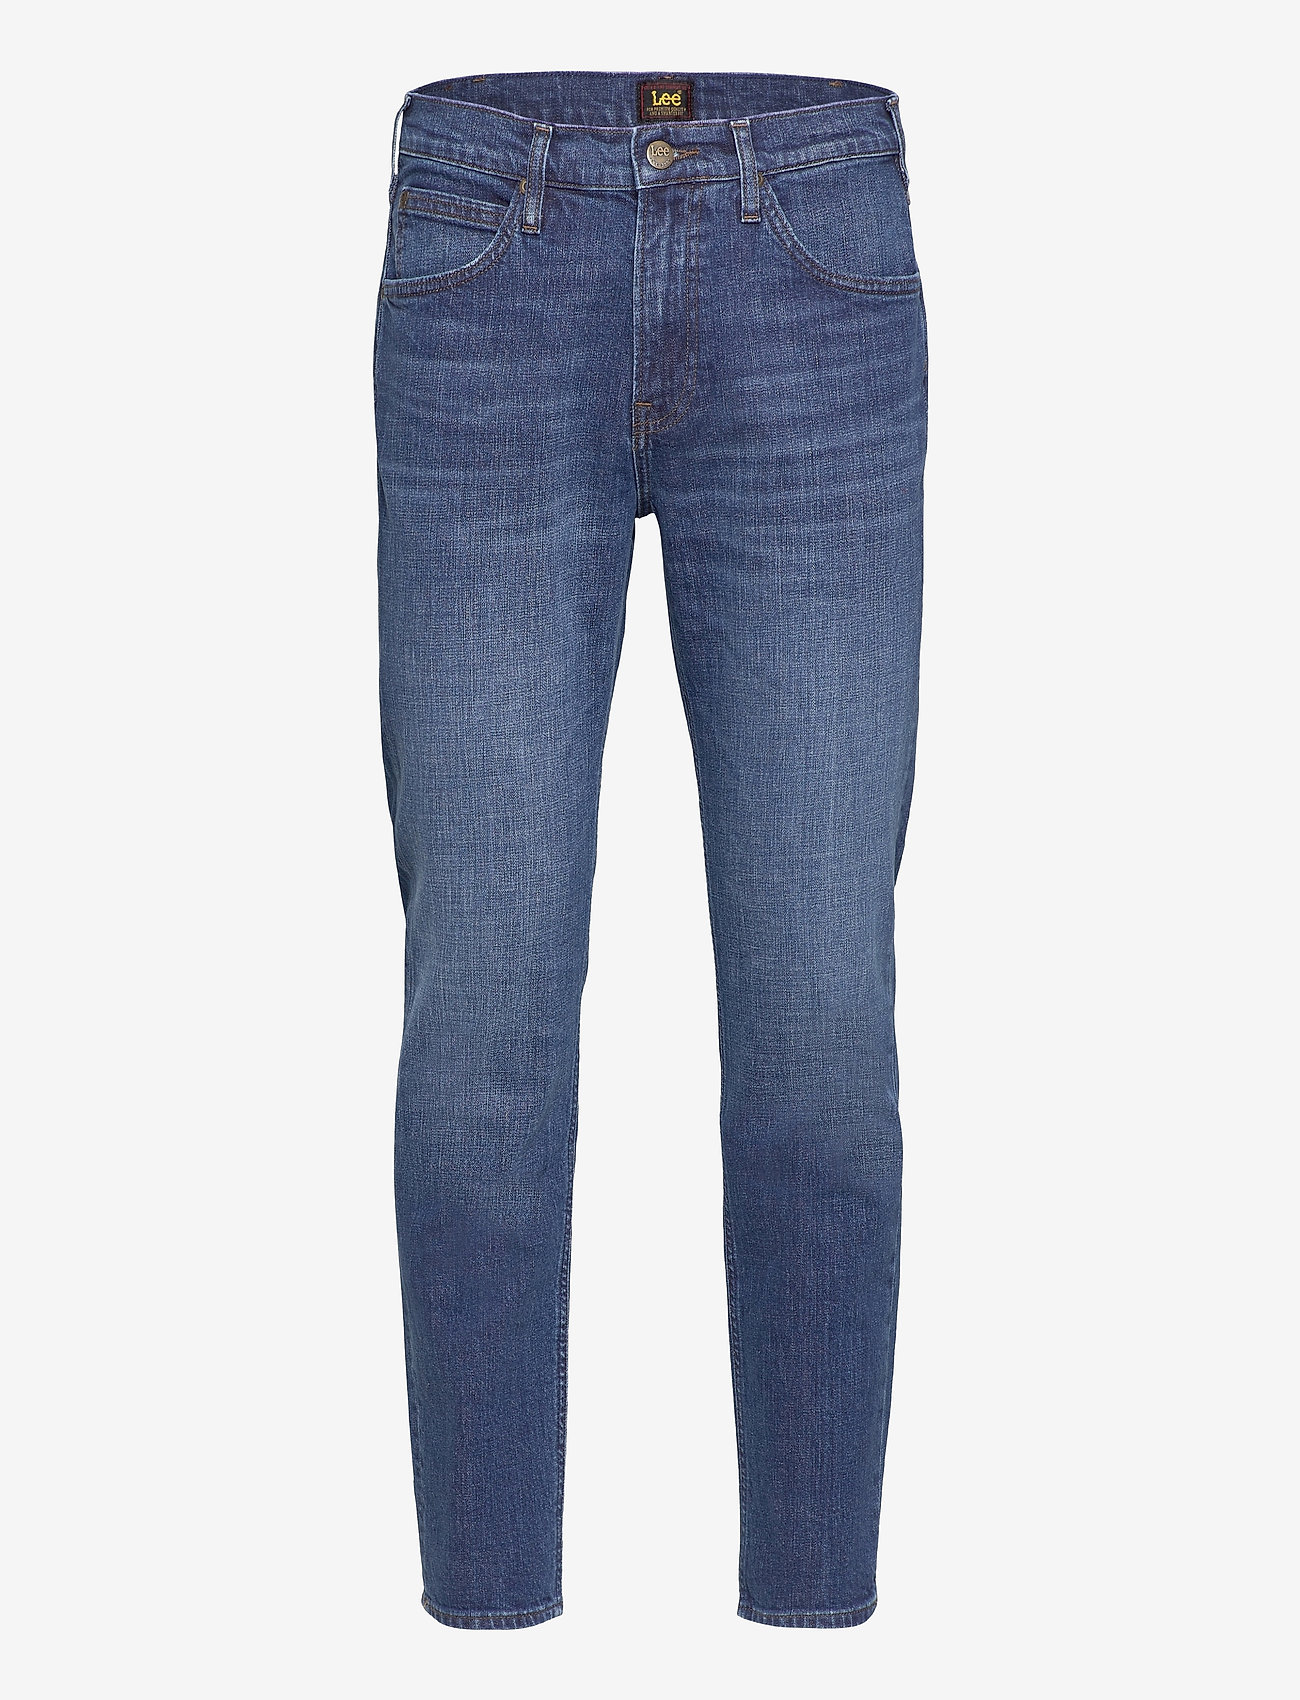 Lee Jeans - AUSTIN - tapered jeans - mid bluegrass - 0